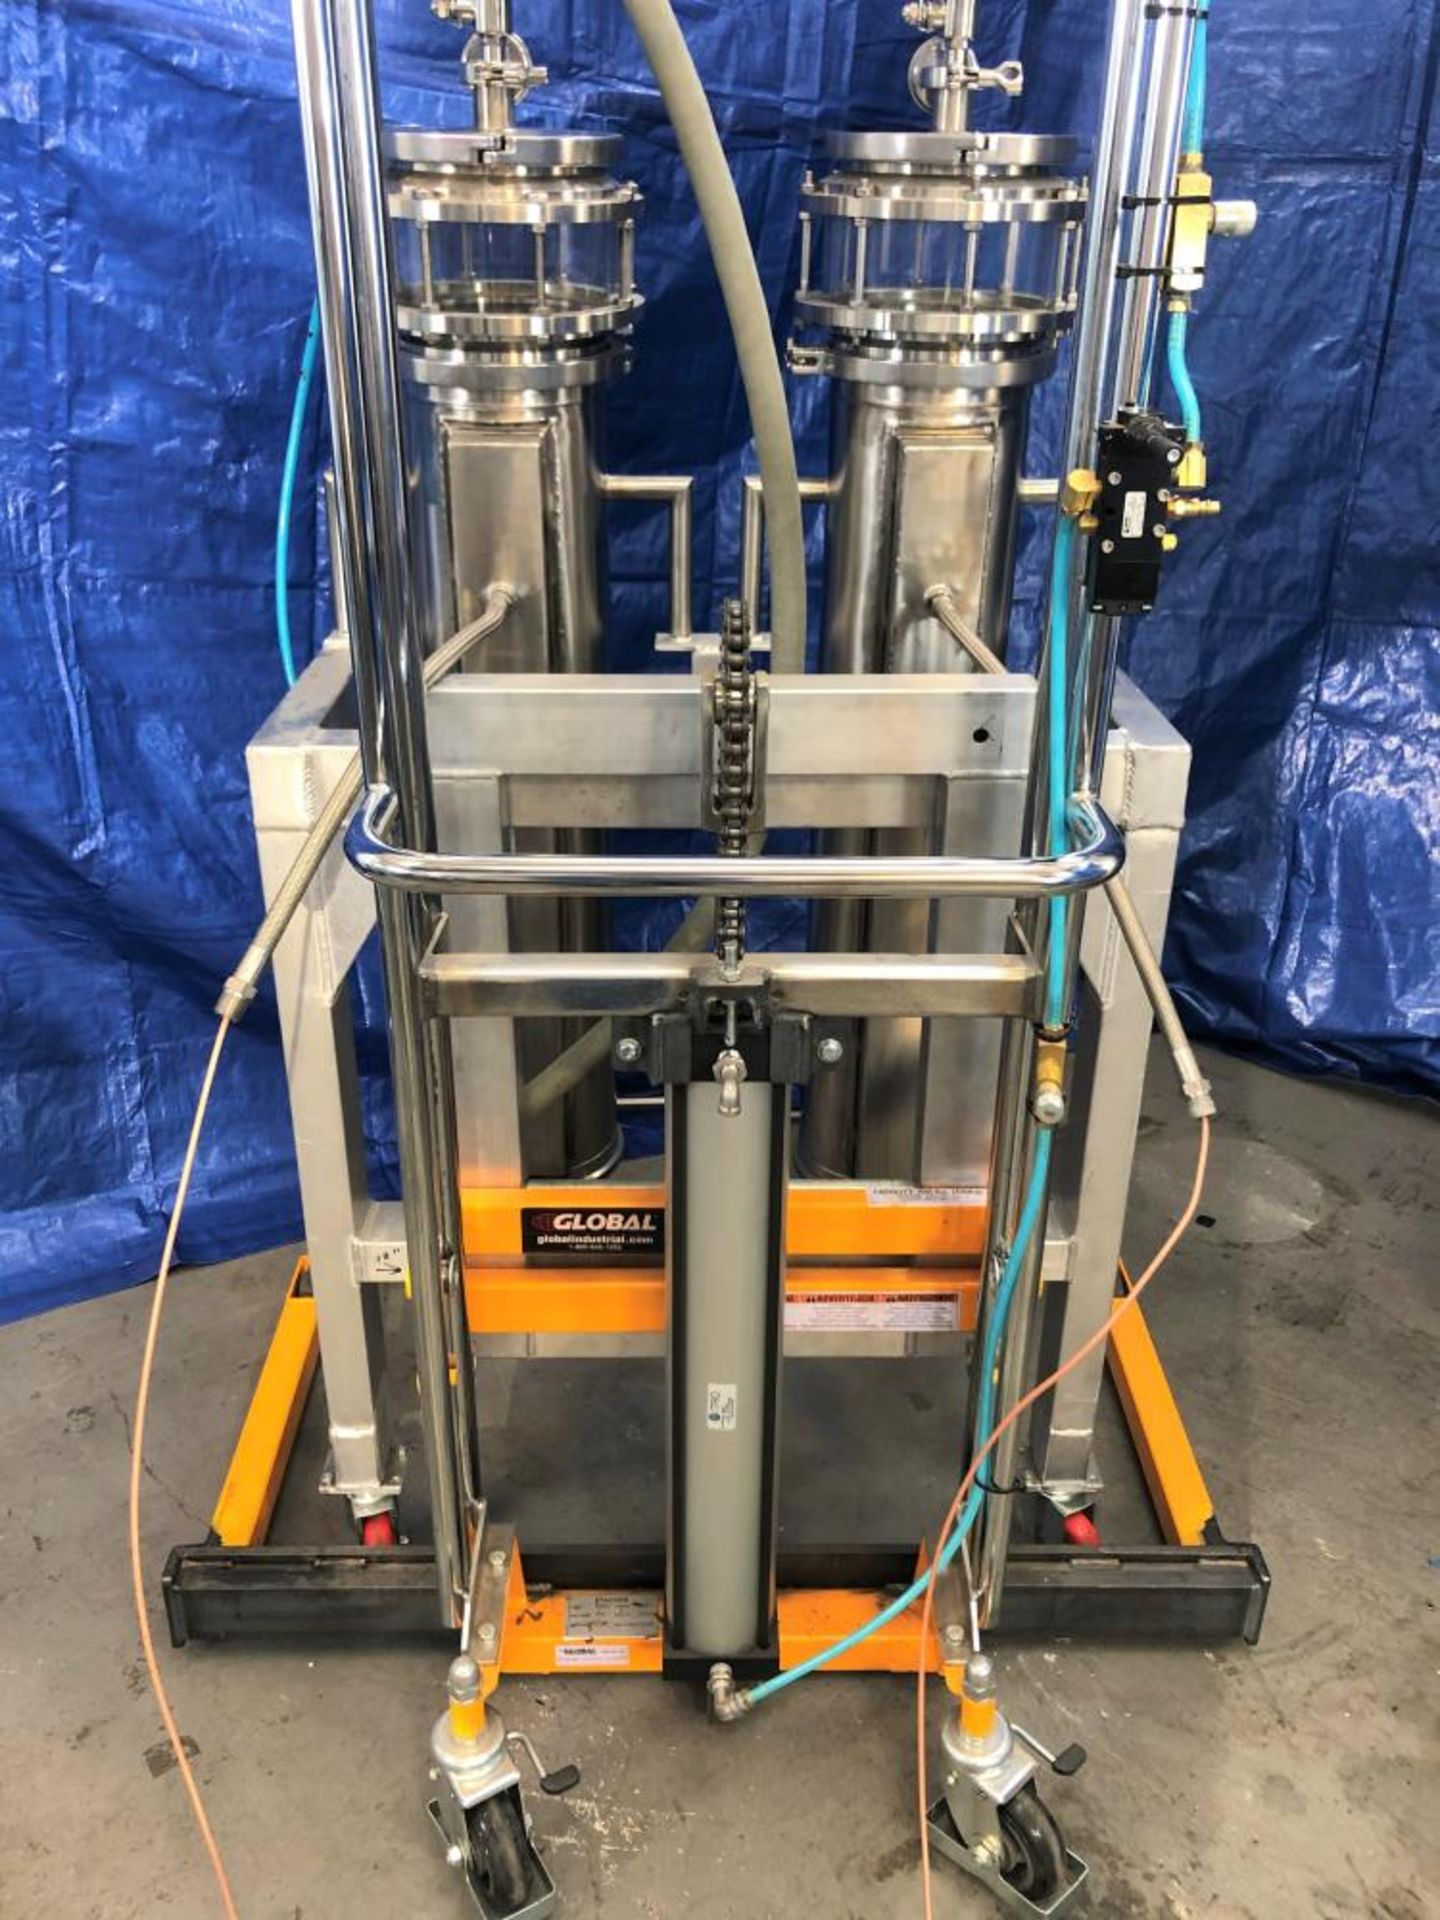 Used-Ultrasonic Ethanol Extractor, 20lb High Purity Extraction System for CBD/THC Extraction - Image 3 of 8